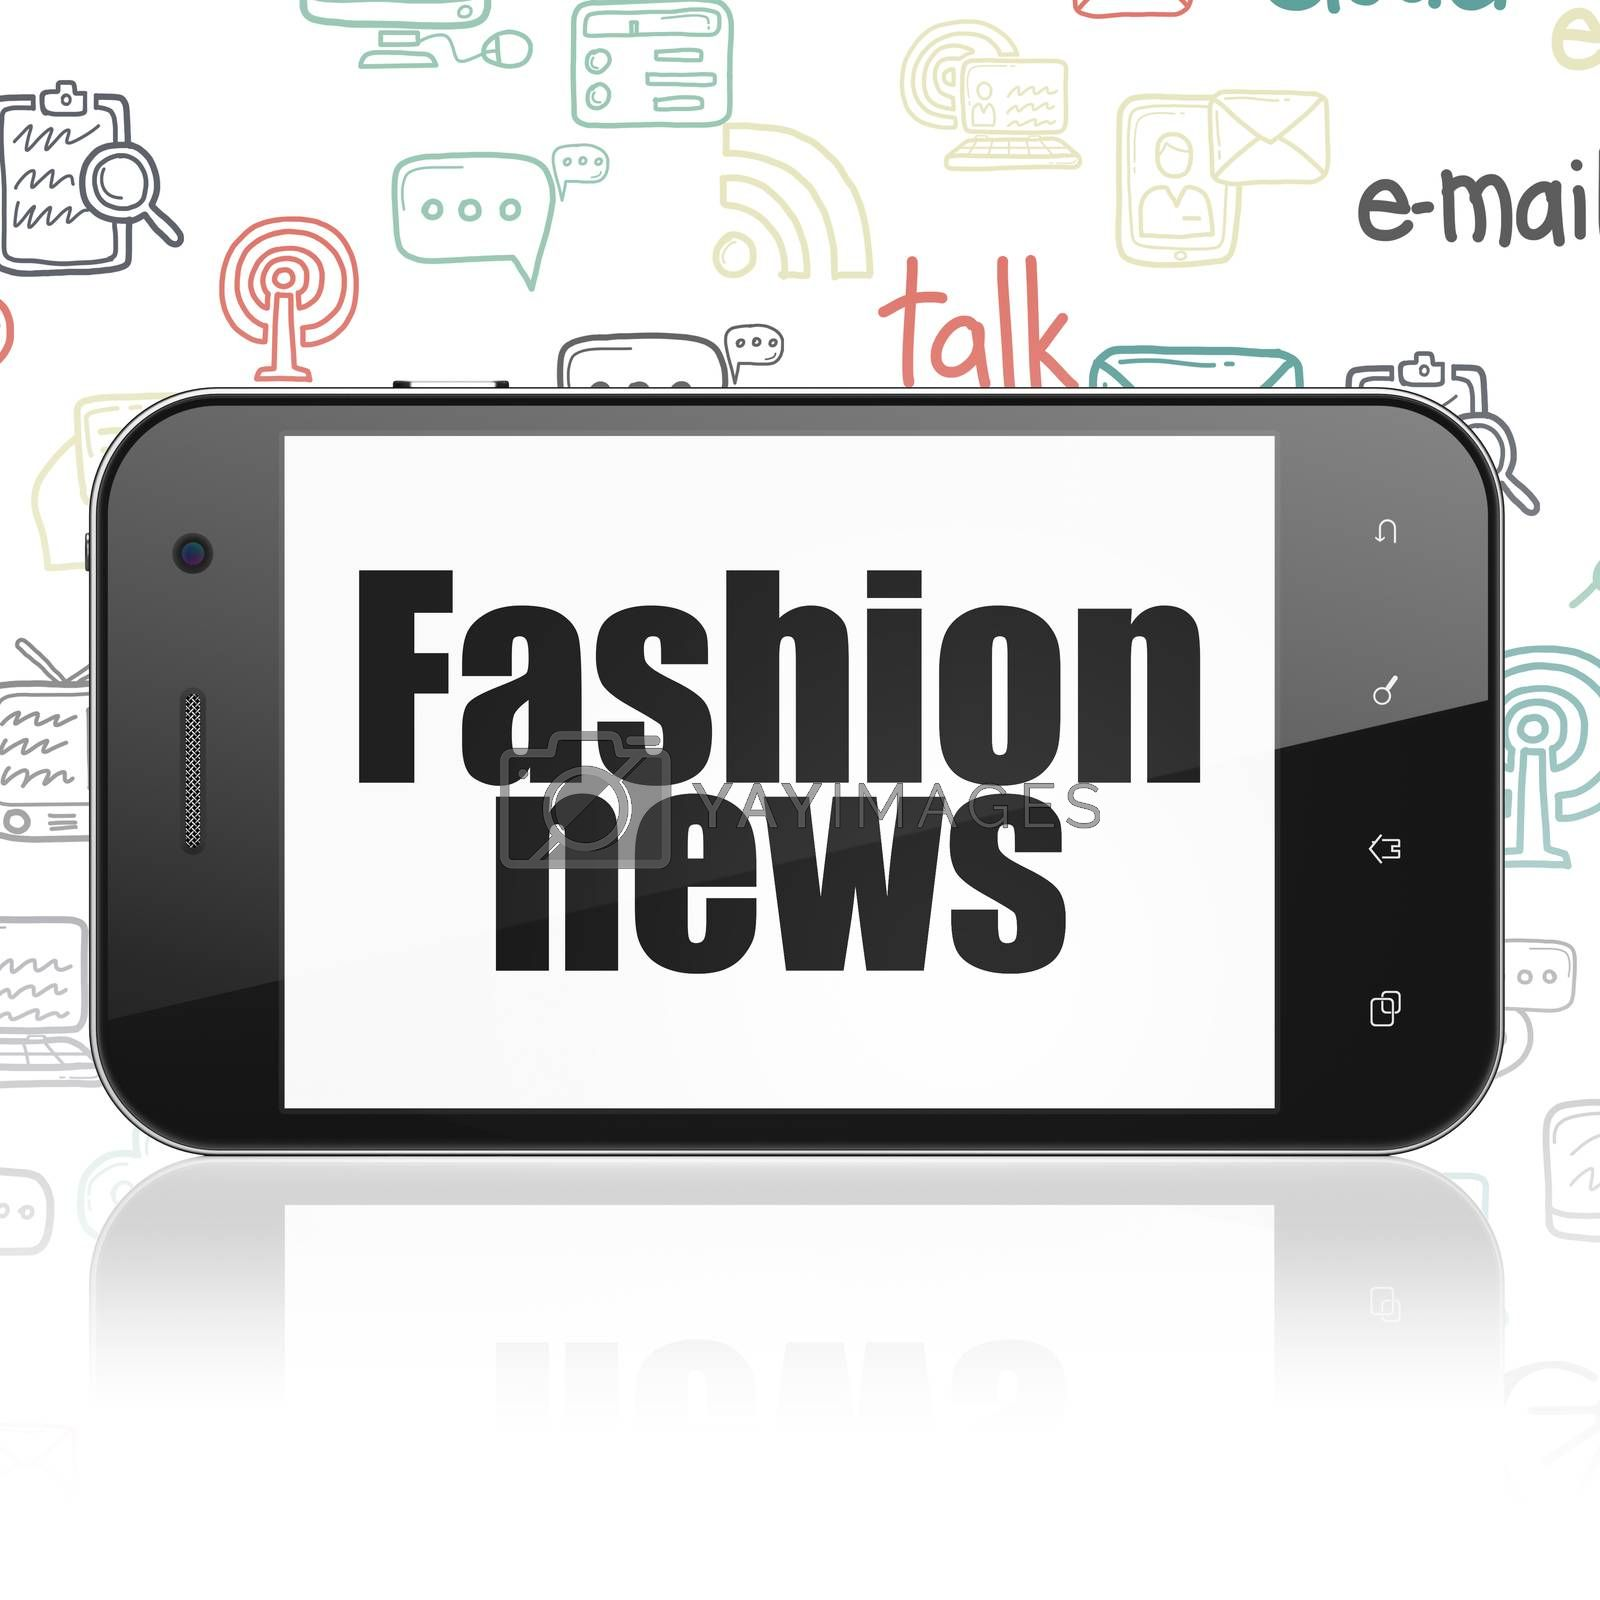 News concept: Smartphone with  black text Fashion News on display,  Hand Drawn News Icons background